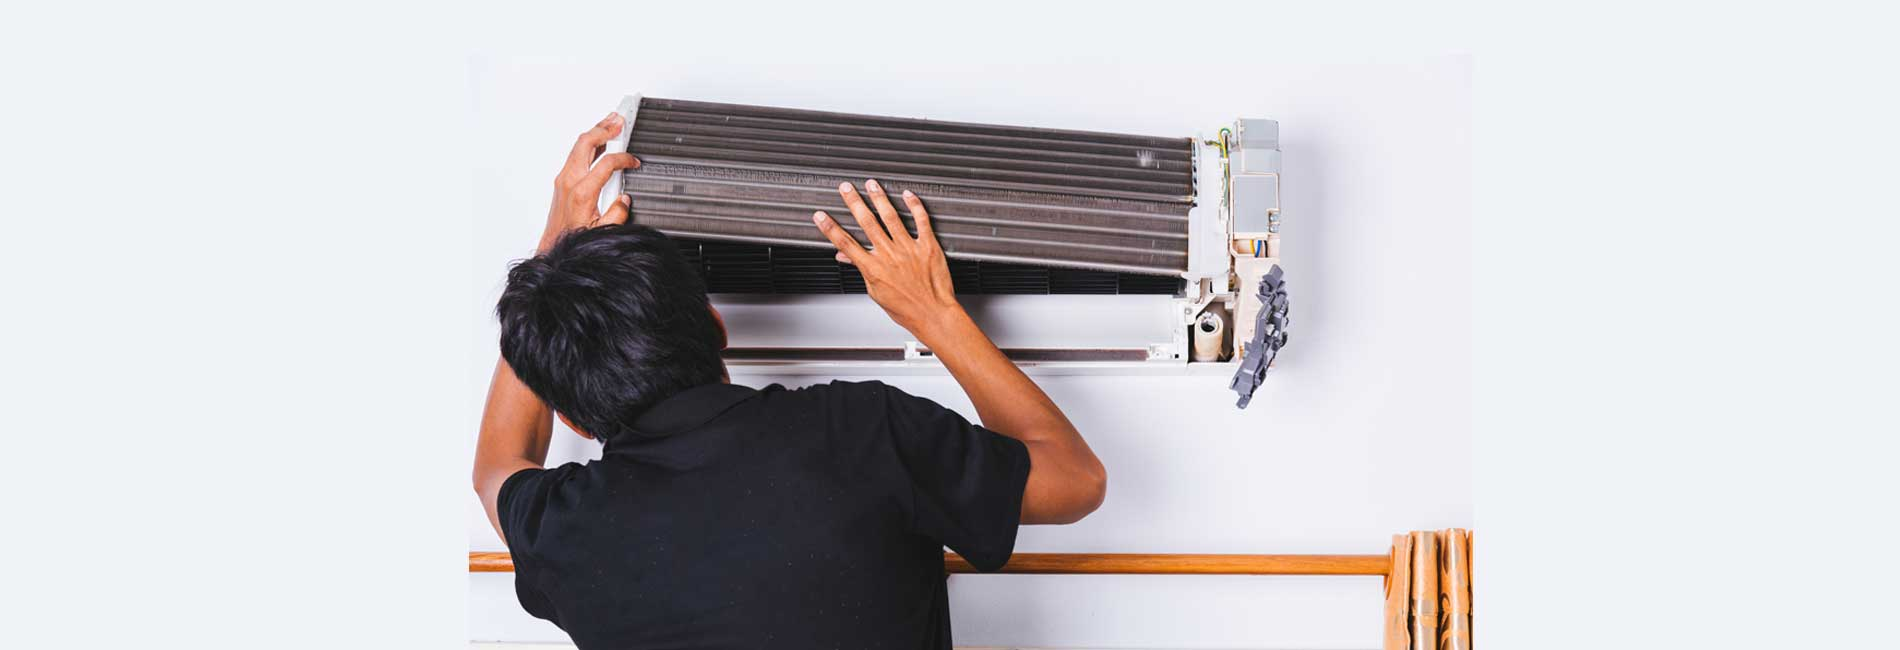 AC Uninstallation and Installation in Fort St. George